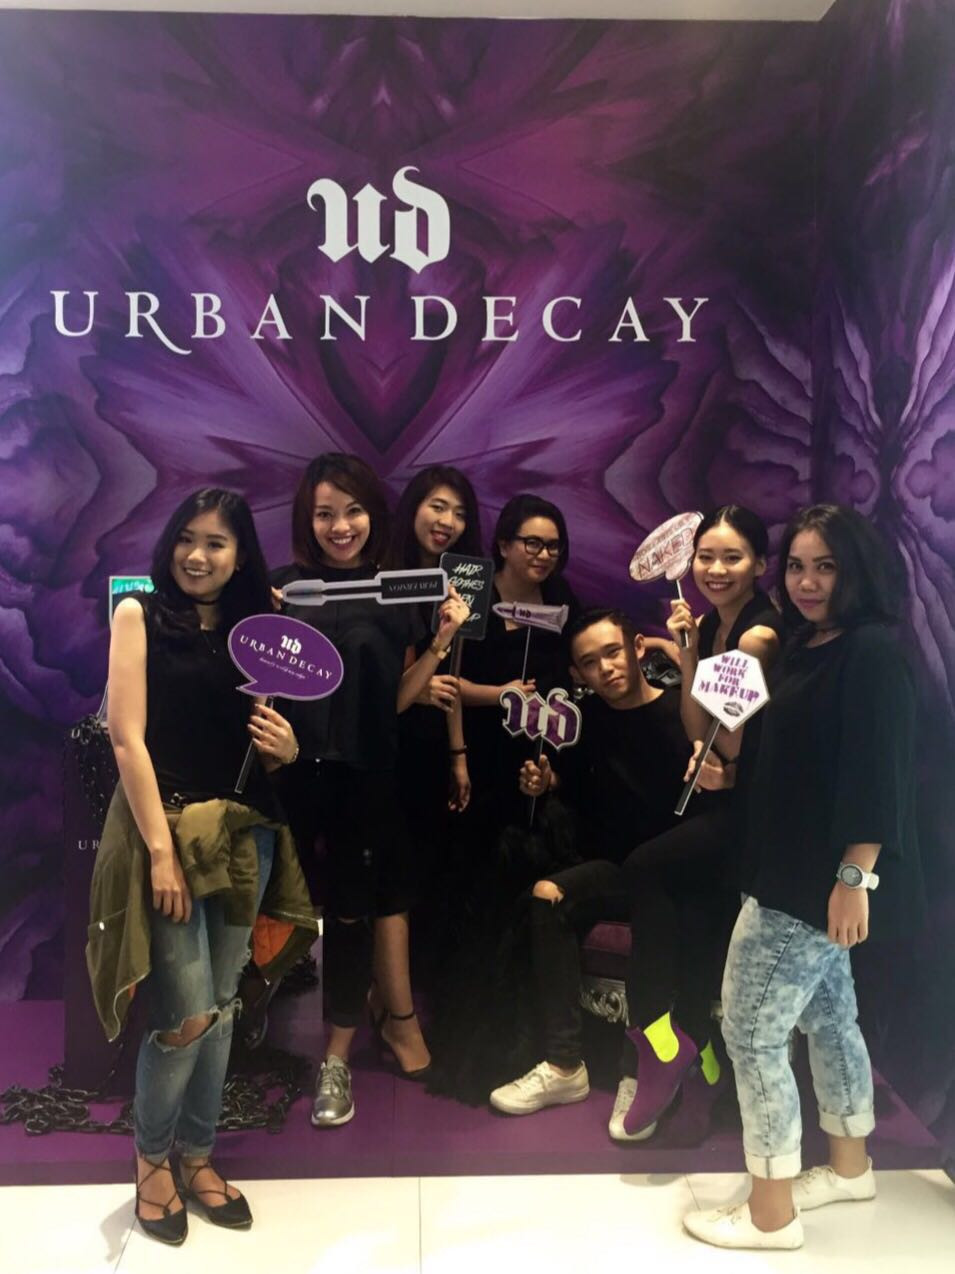 Urban Decay x Sephora team!